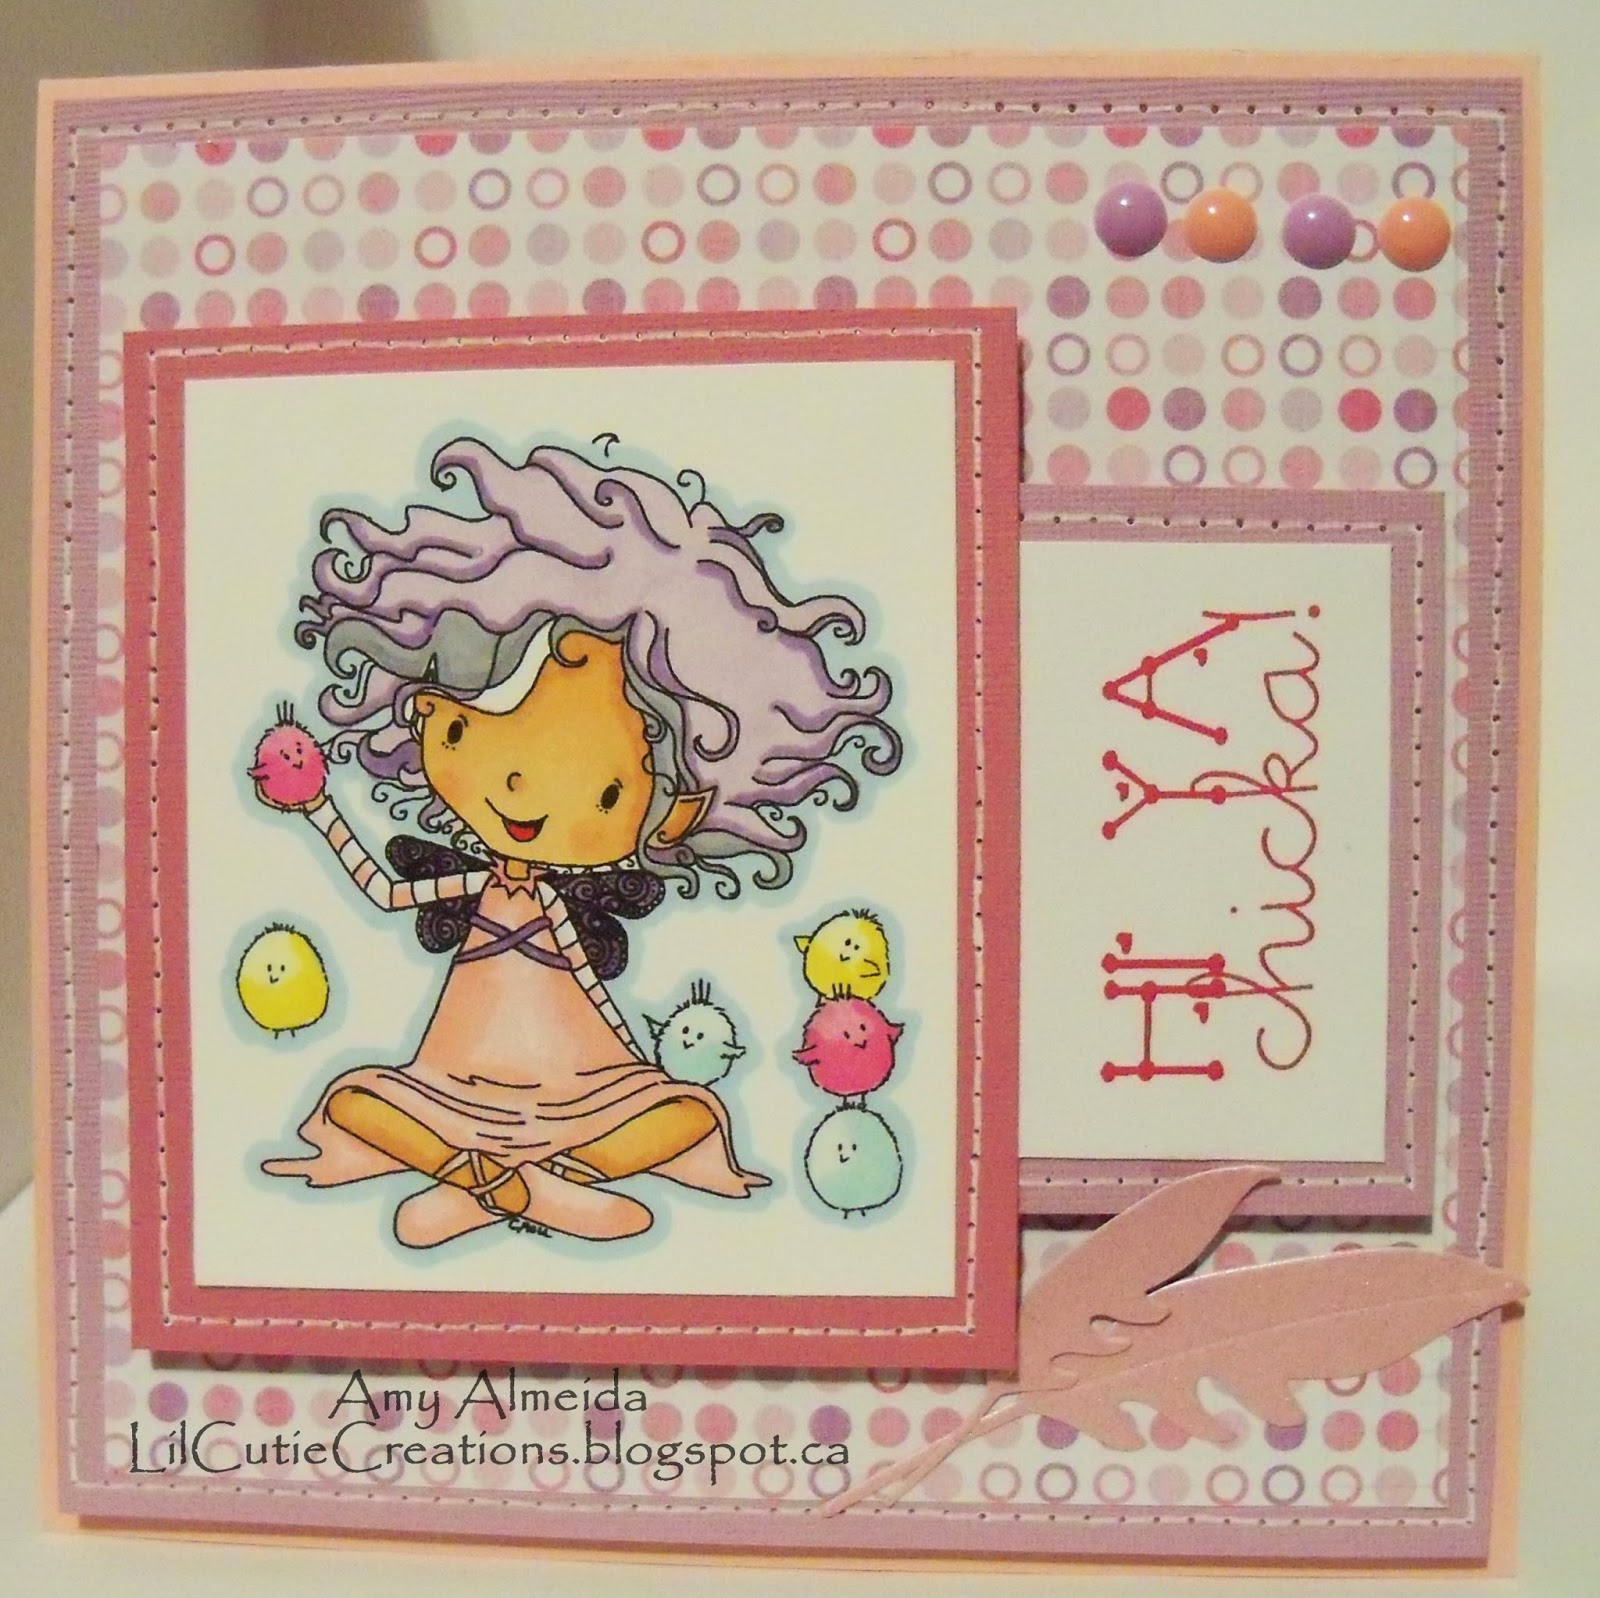 http://lilcutiecreations.blogspot.ca/2014/04/hi-ya-chicka.html